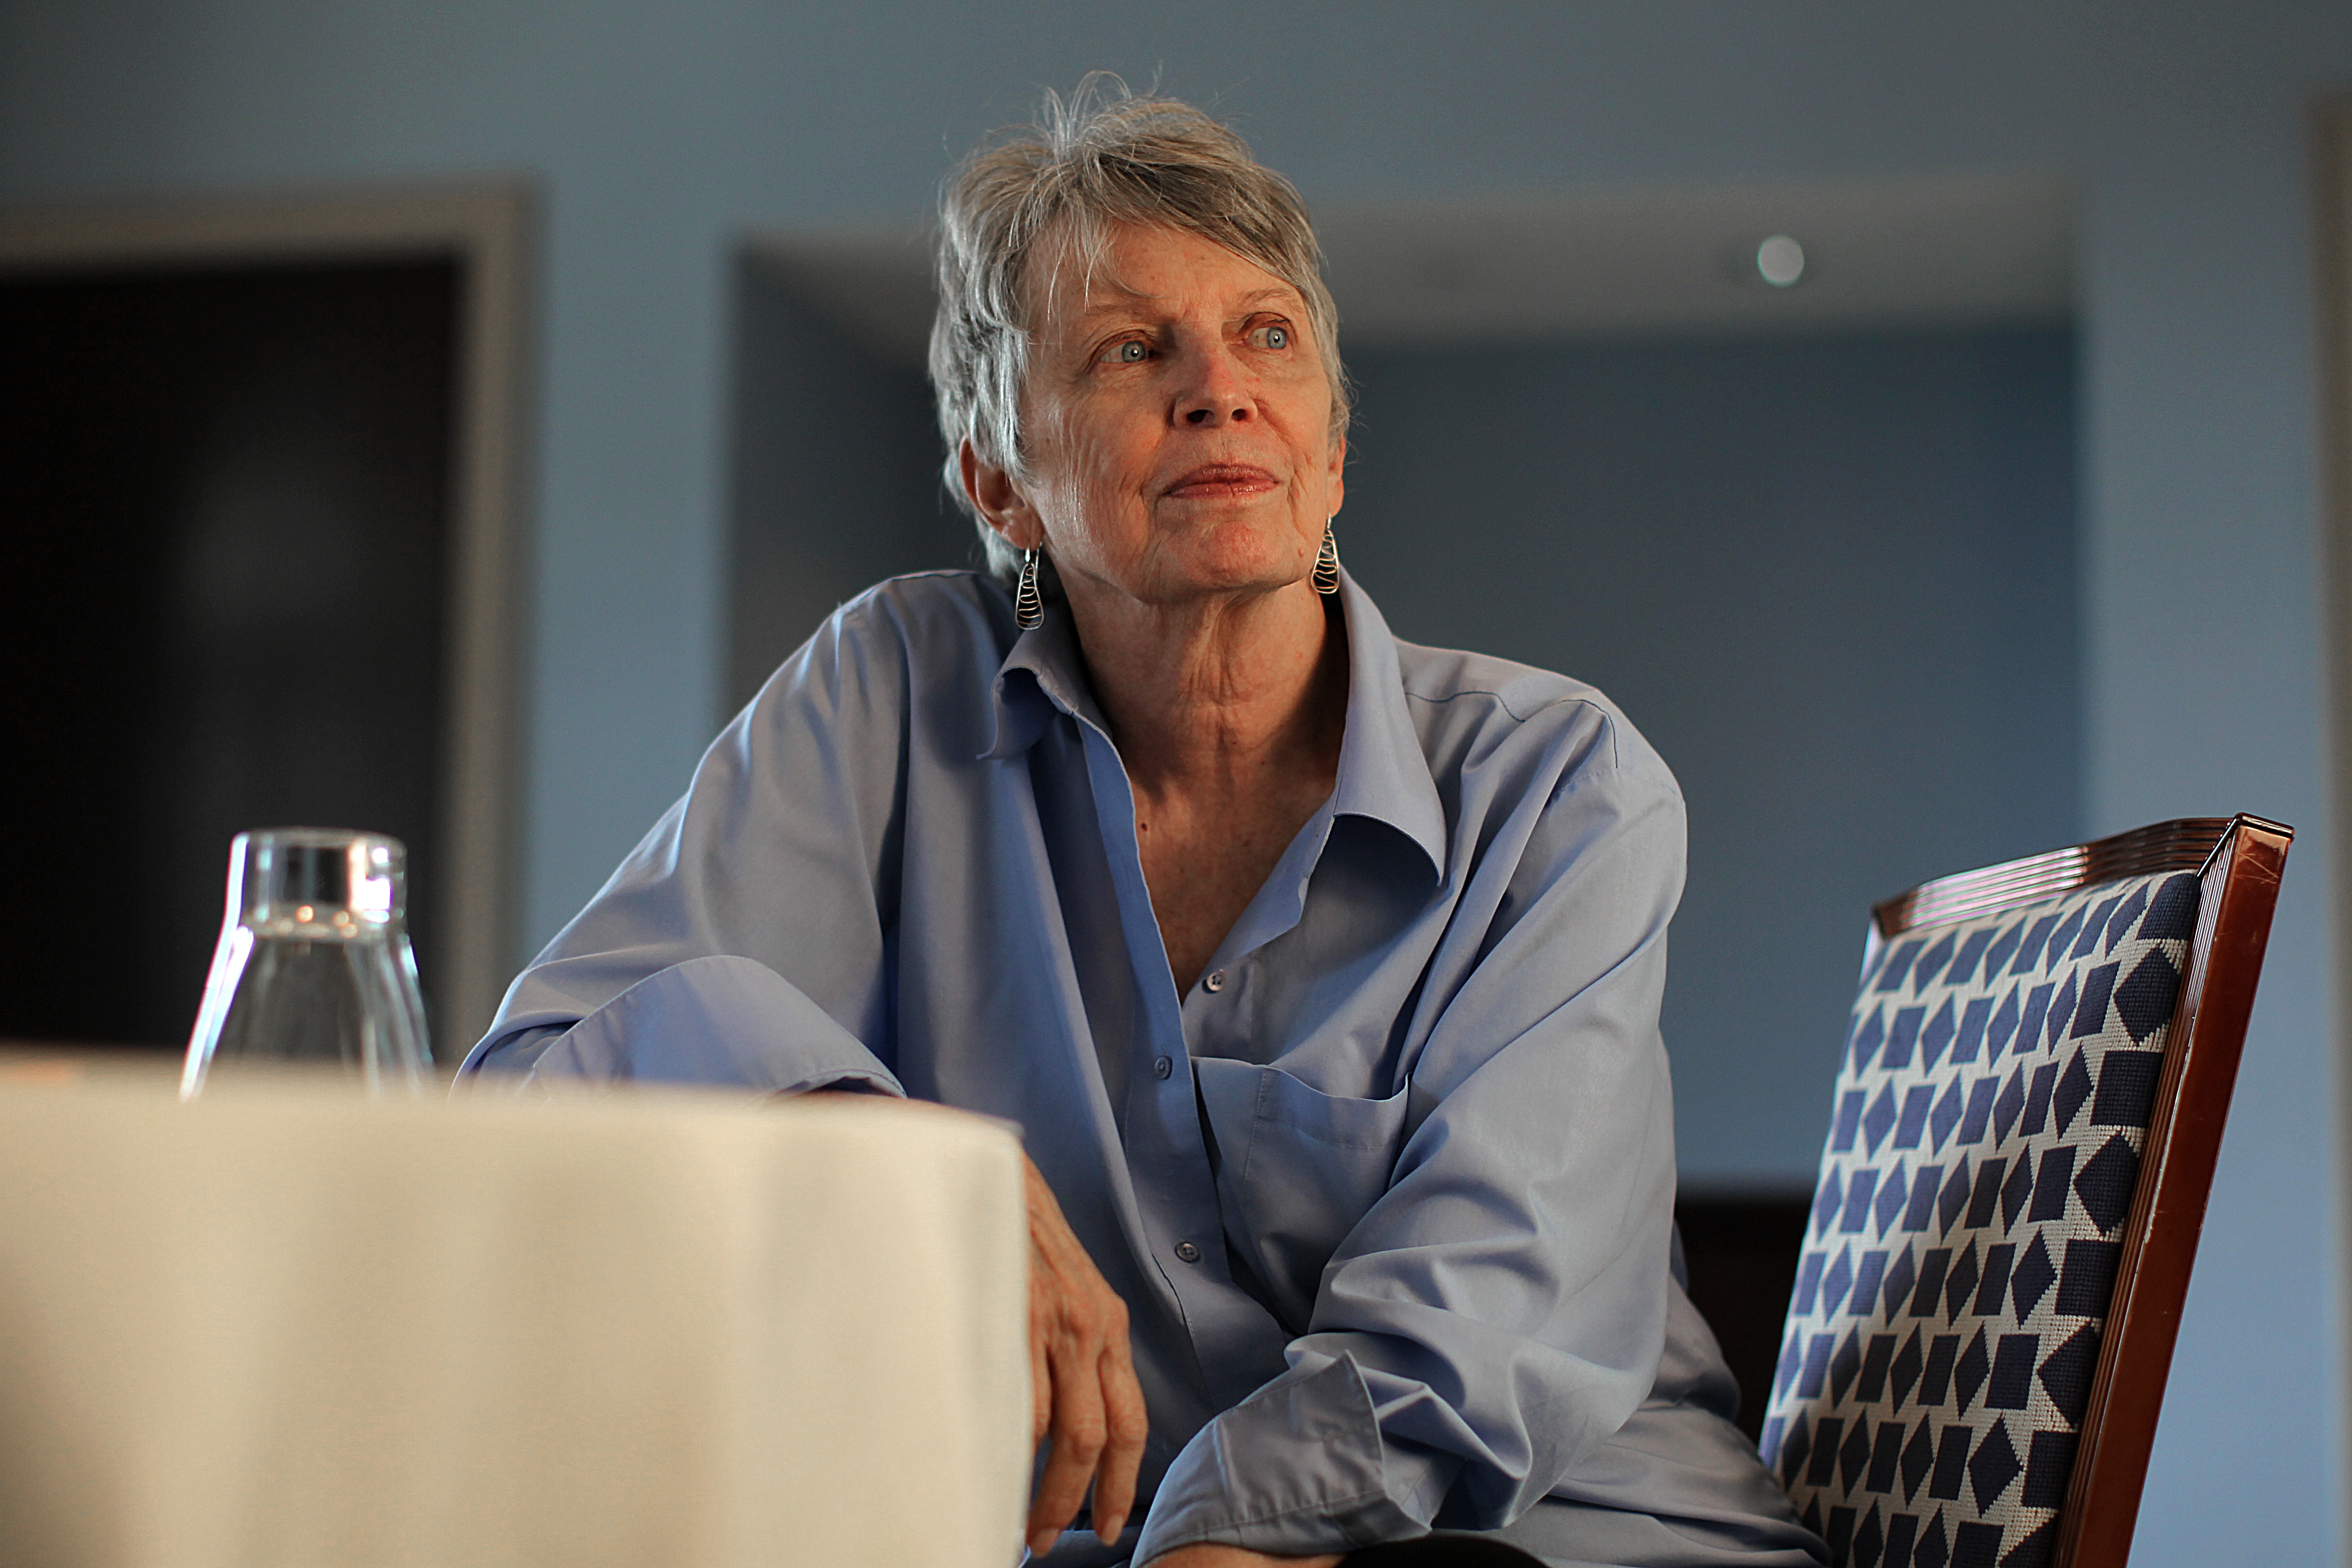 Interview: Director Phillip Noyce Tackles Science Fiction with The Giver